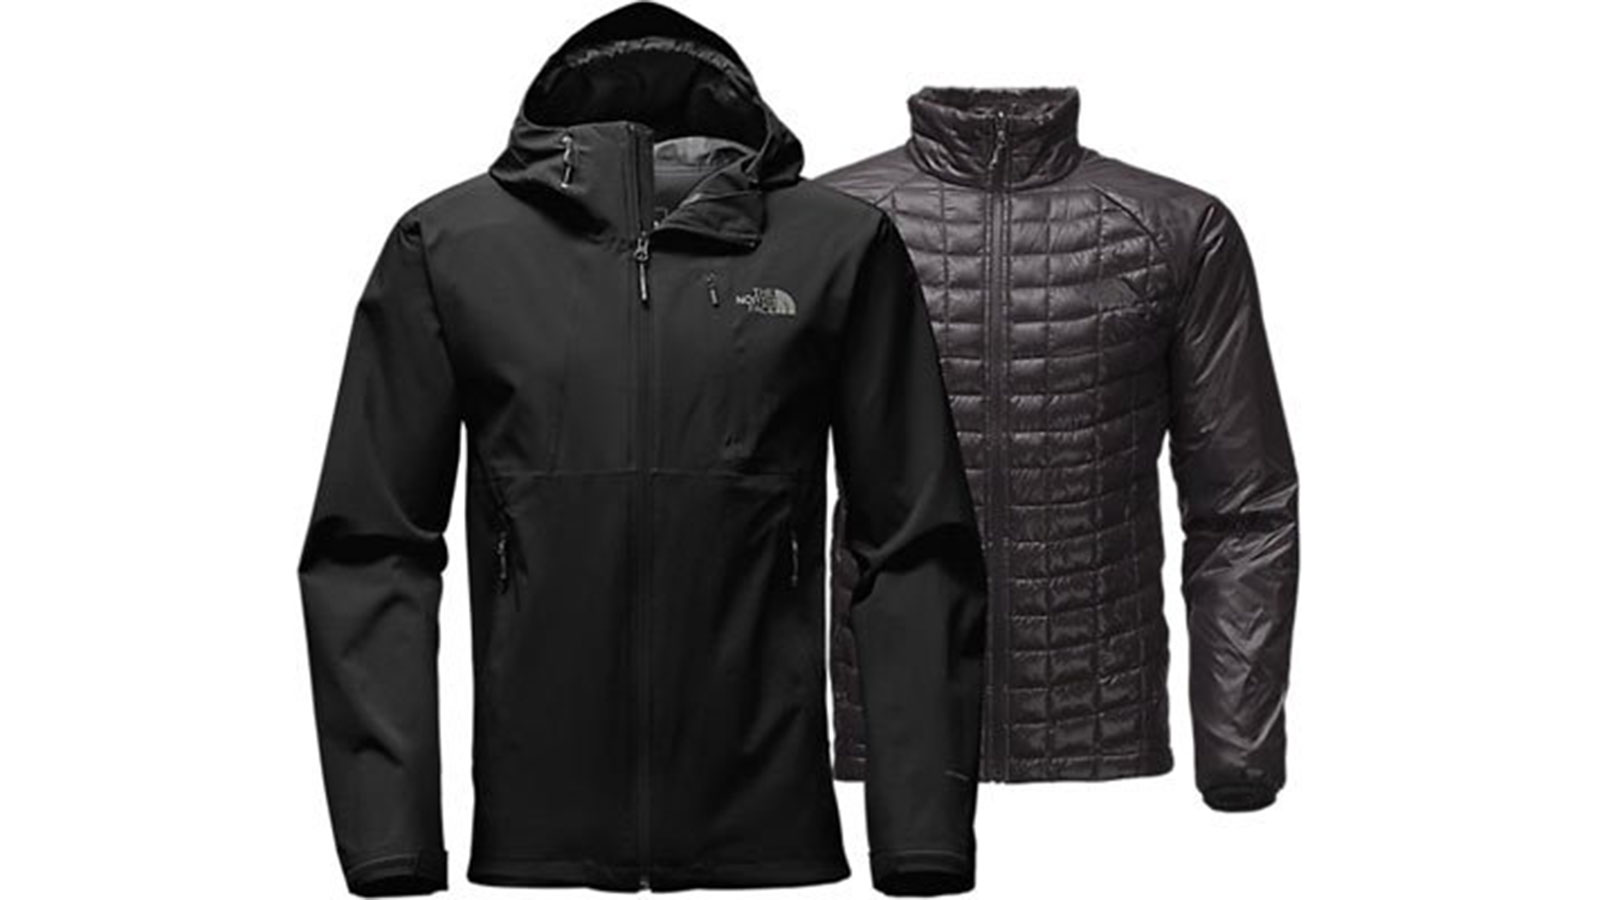 3-in-1 North Face Thermoball Triclimate Men's Ski Jacket | The Best Men's Ski Jackets